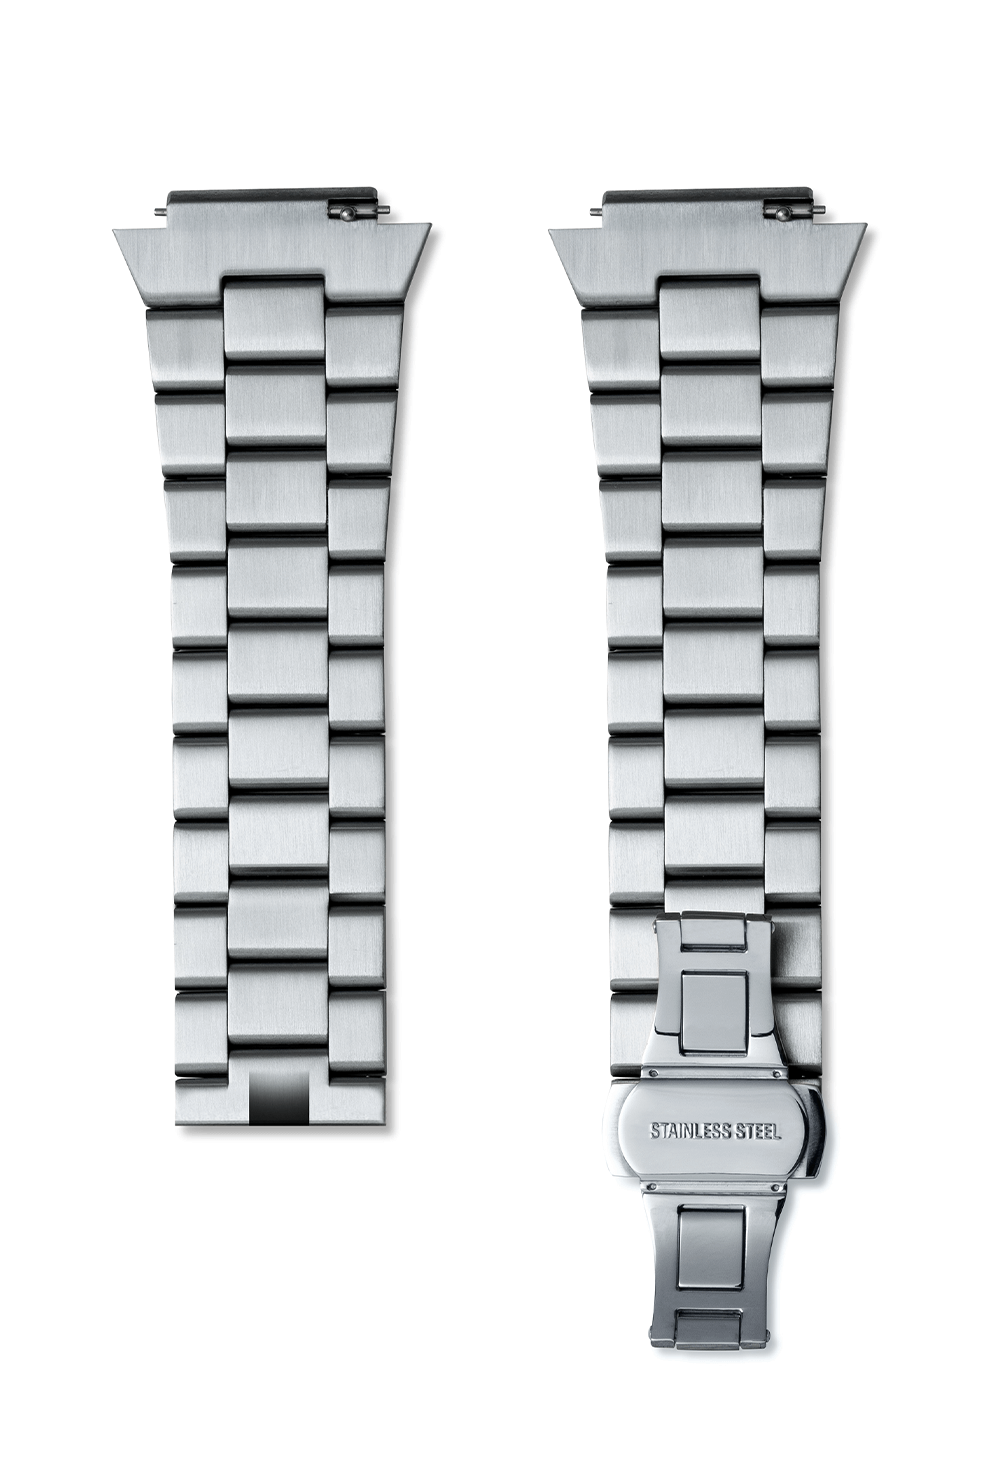 Signature/Star Dust Steel Watchband - Silver